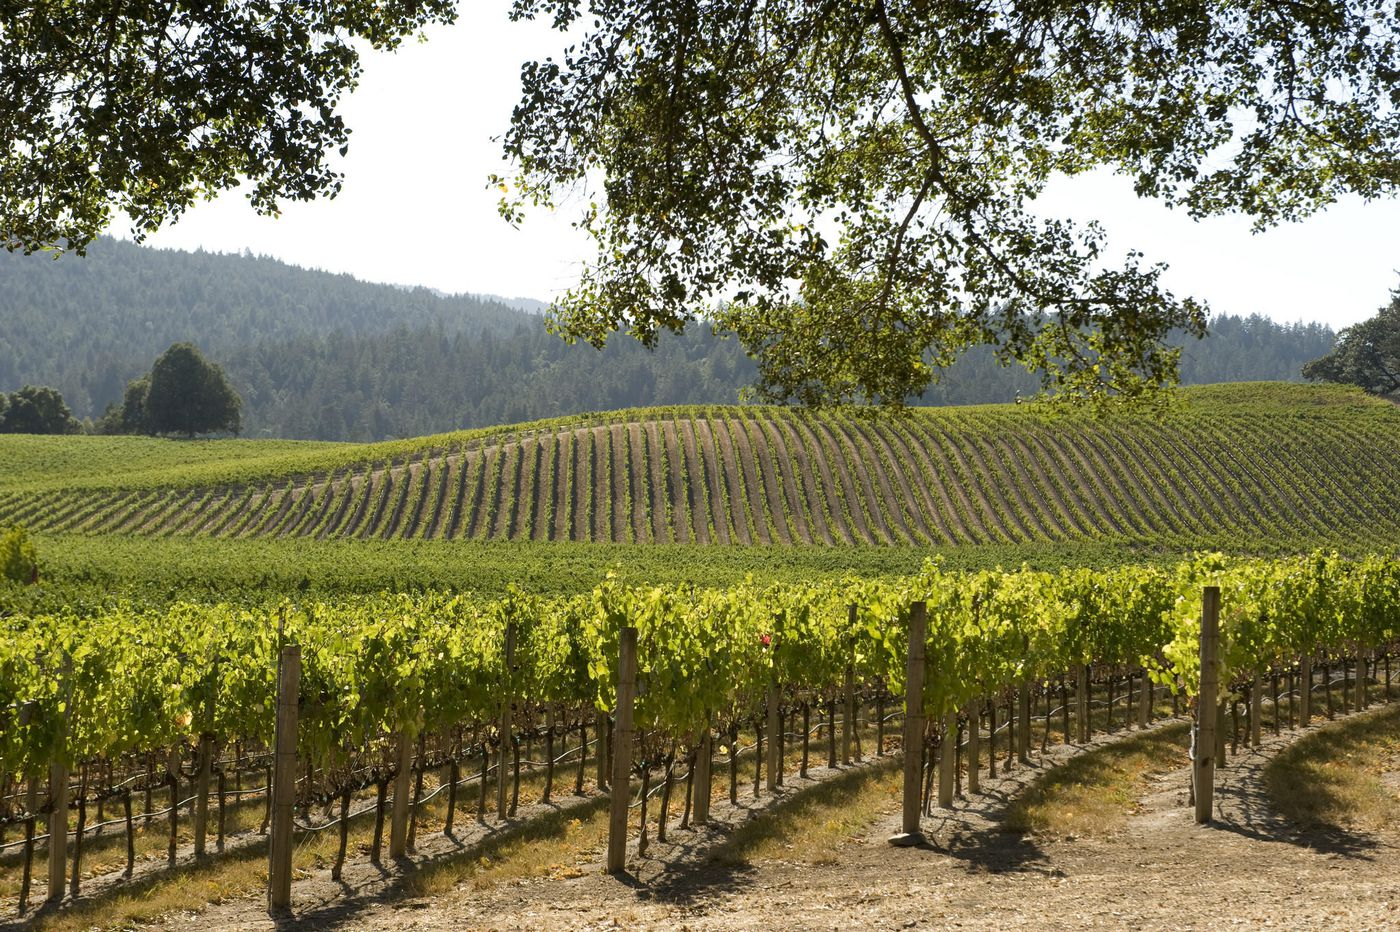 The vineyard sits alongside the Russian River in Mendocino's inland area. Valley fruit combined with well drained alluvial soil provide elegant conditions to ripen the flavors of an early picked Syrah. -